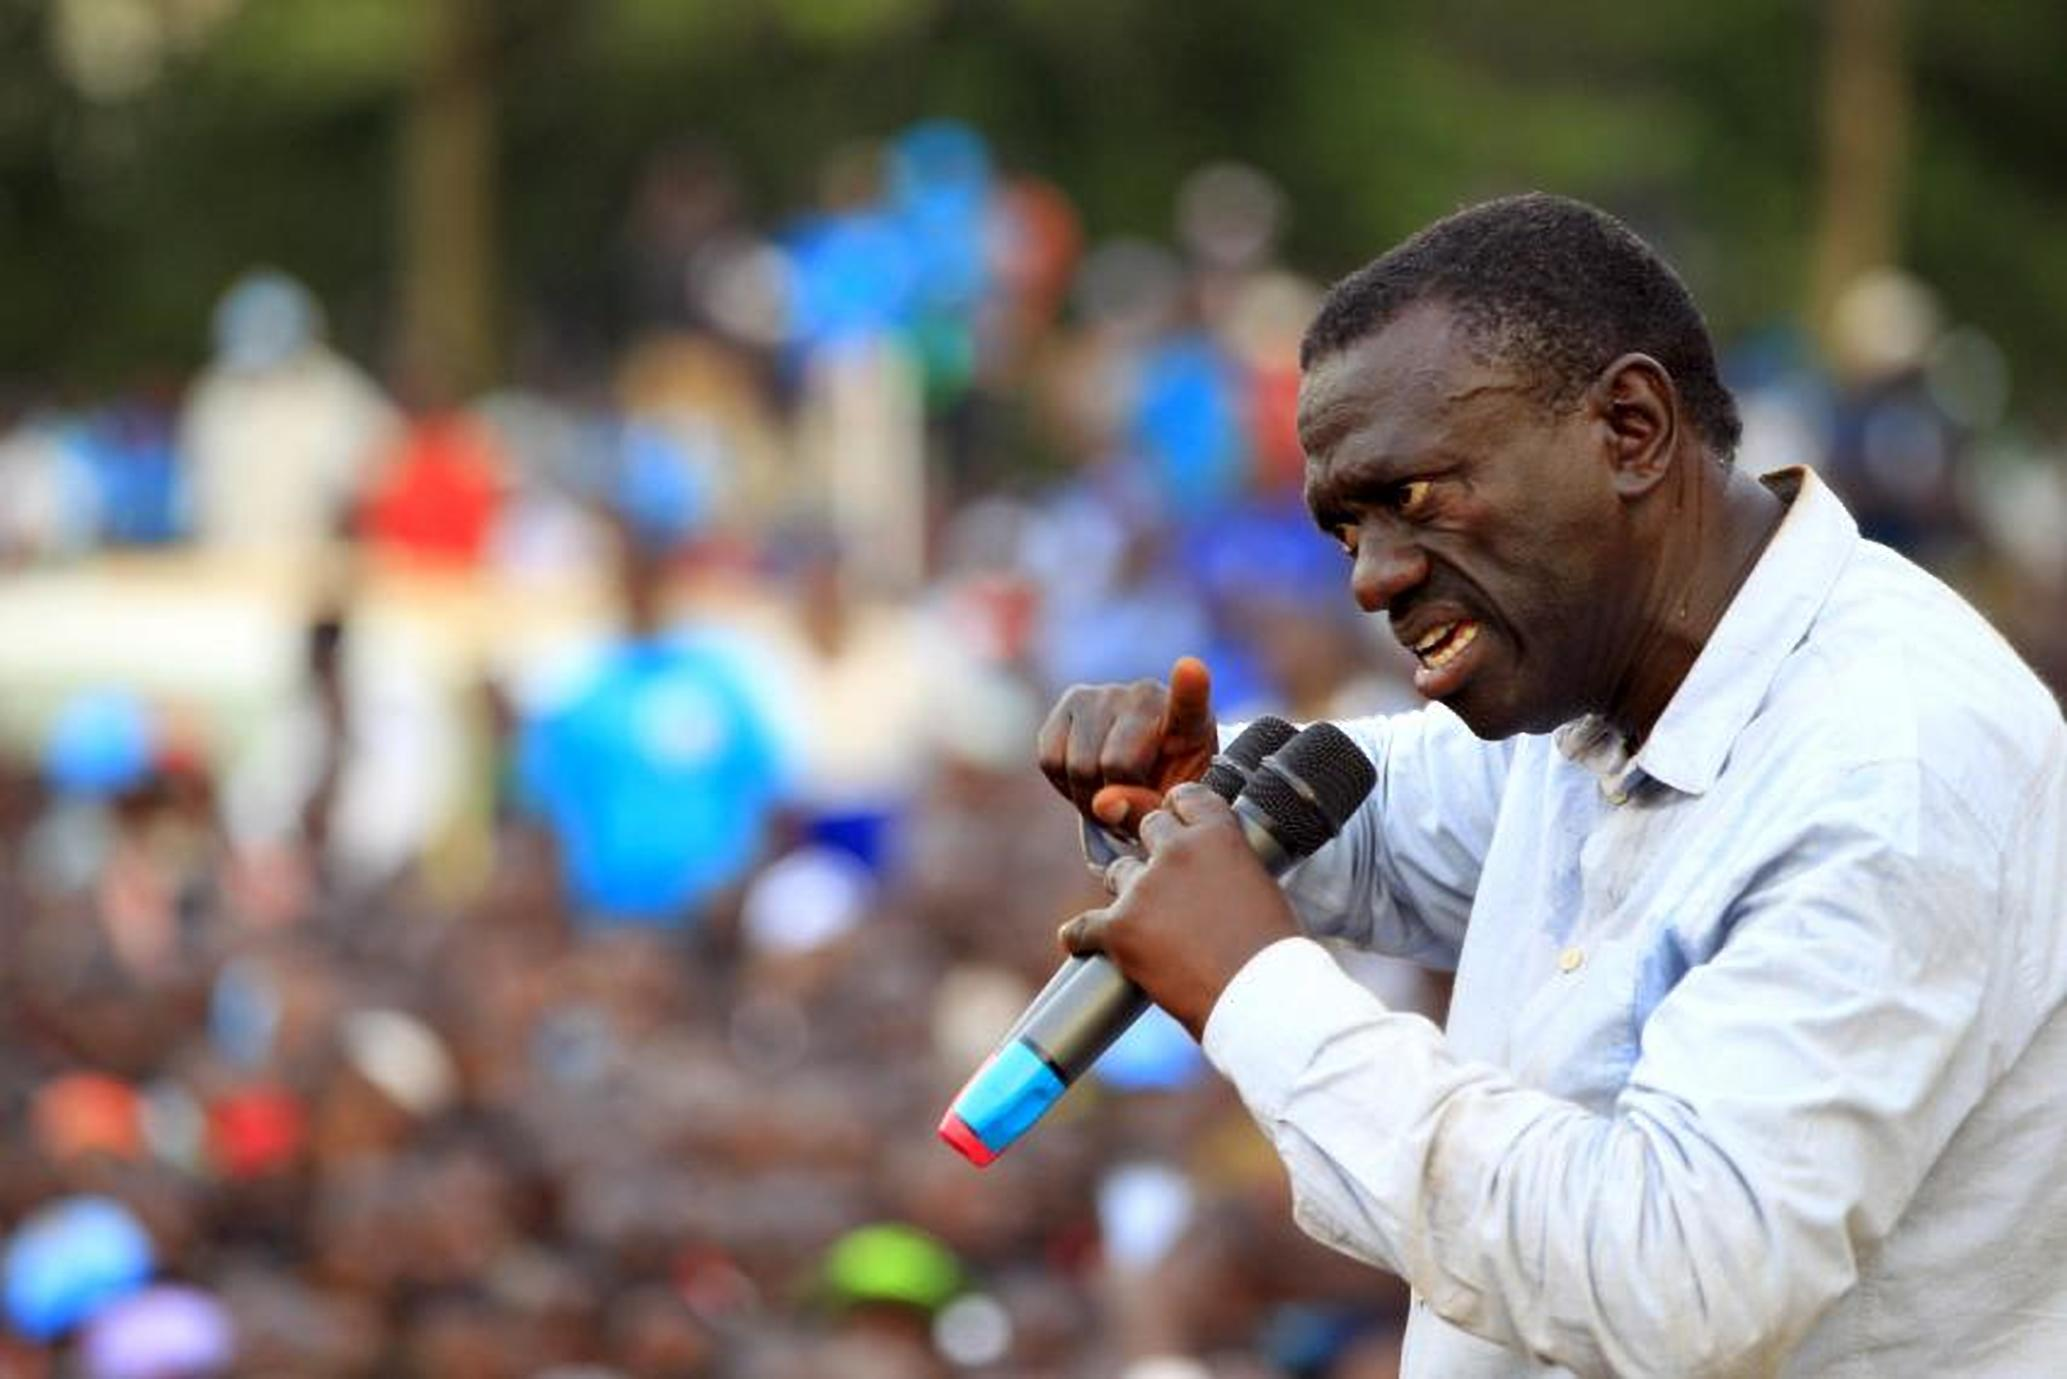 Kizza Besigye at a rally in Jinja Uganda (COURTESY PHOTO)